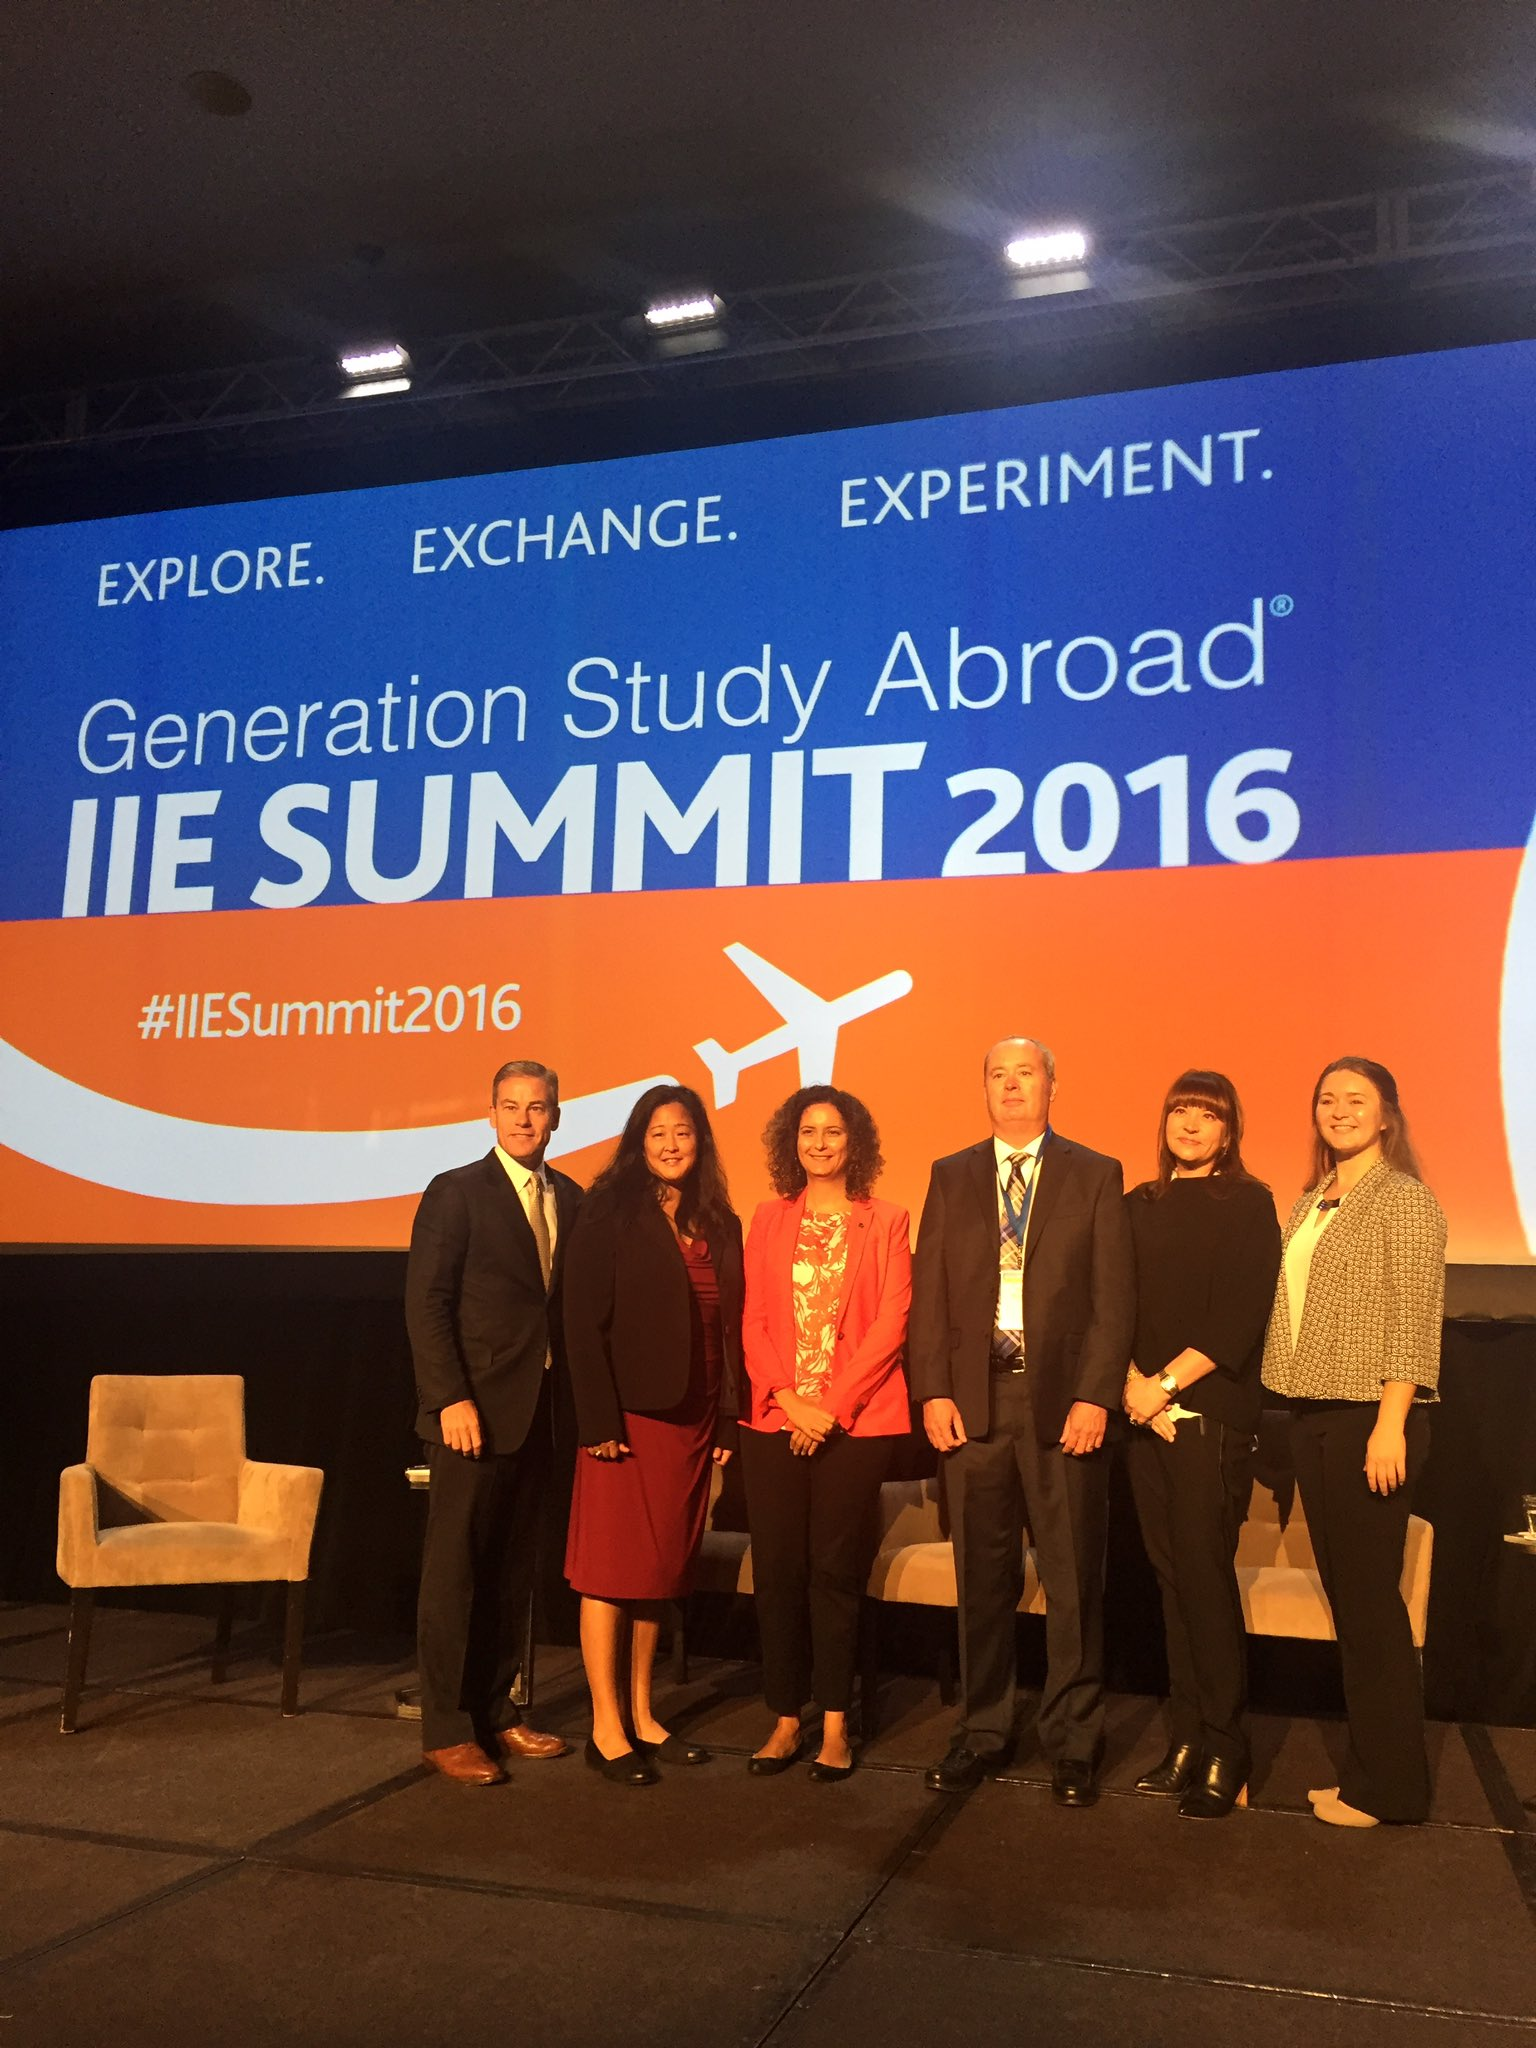 Thank you for a great start to #IIESummit2016! https://t.co/CWsEayDvVz